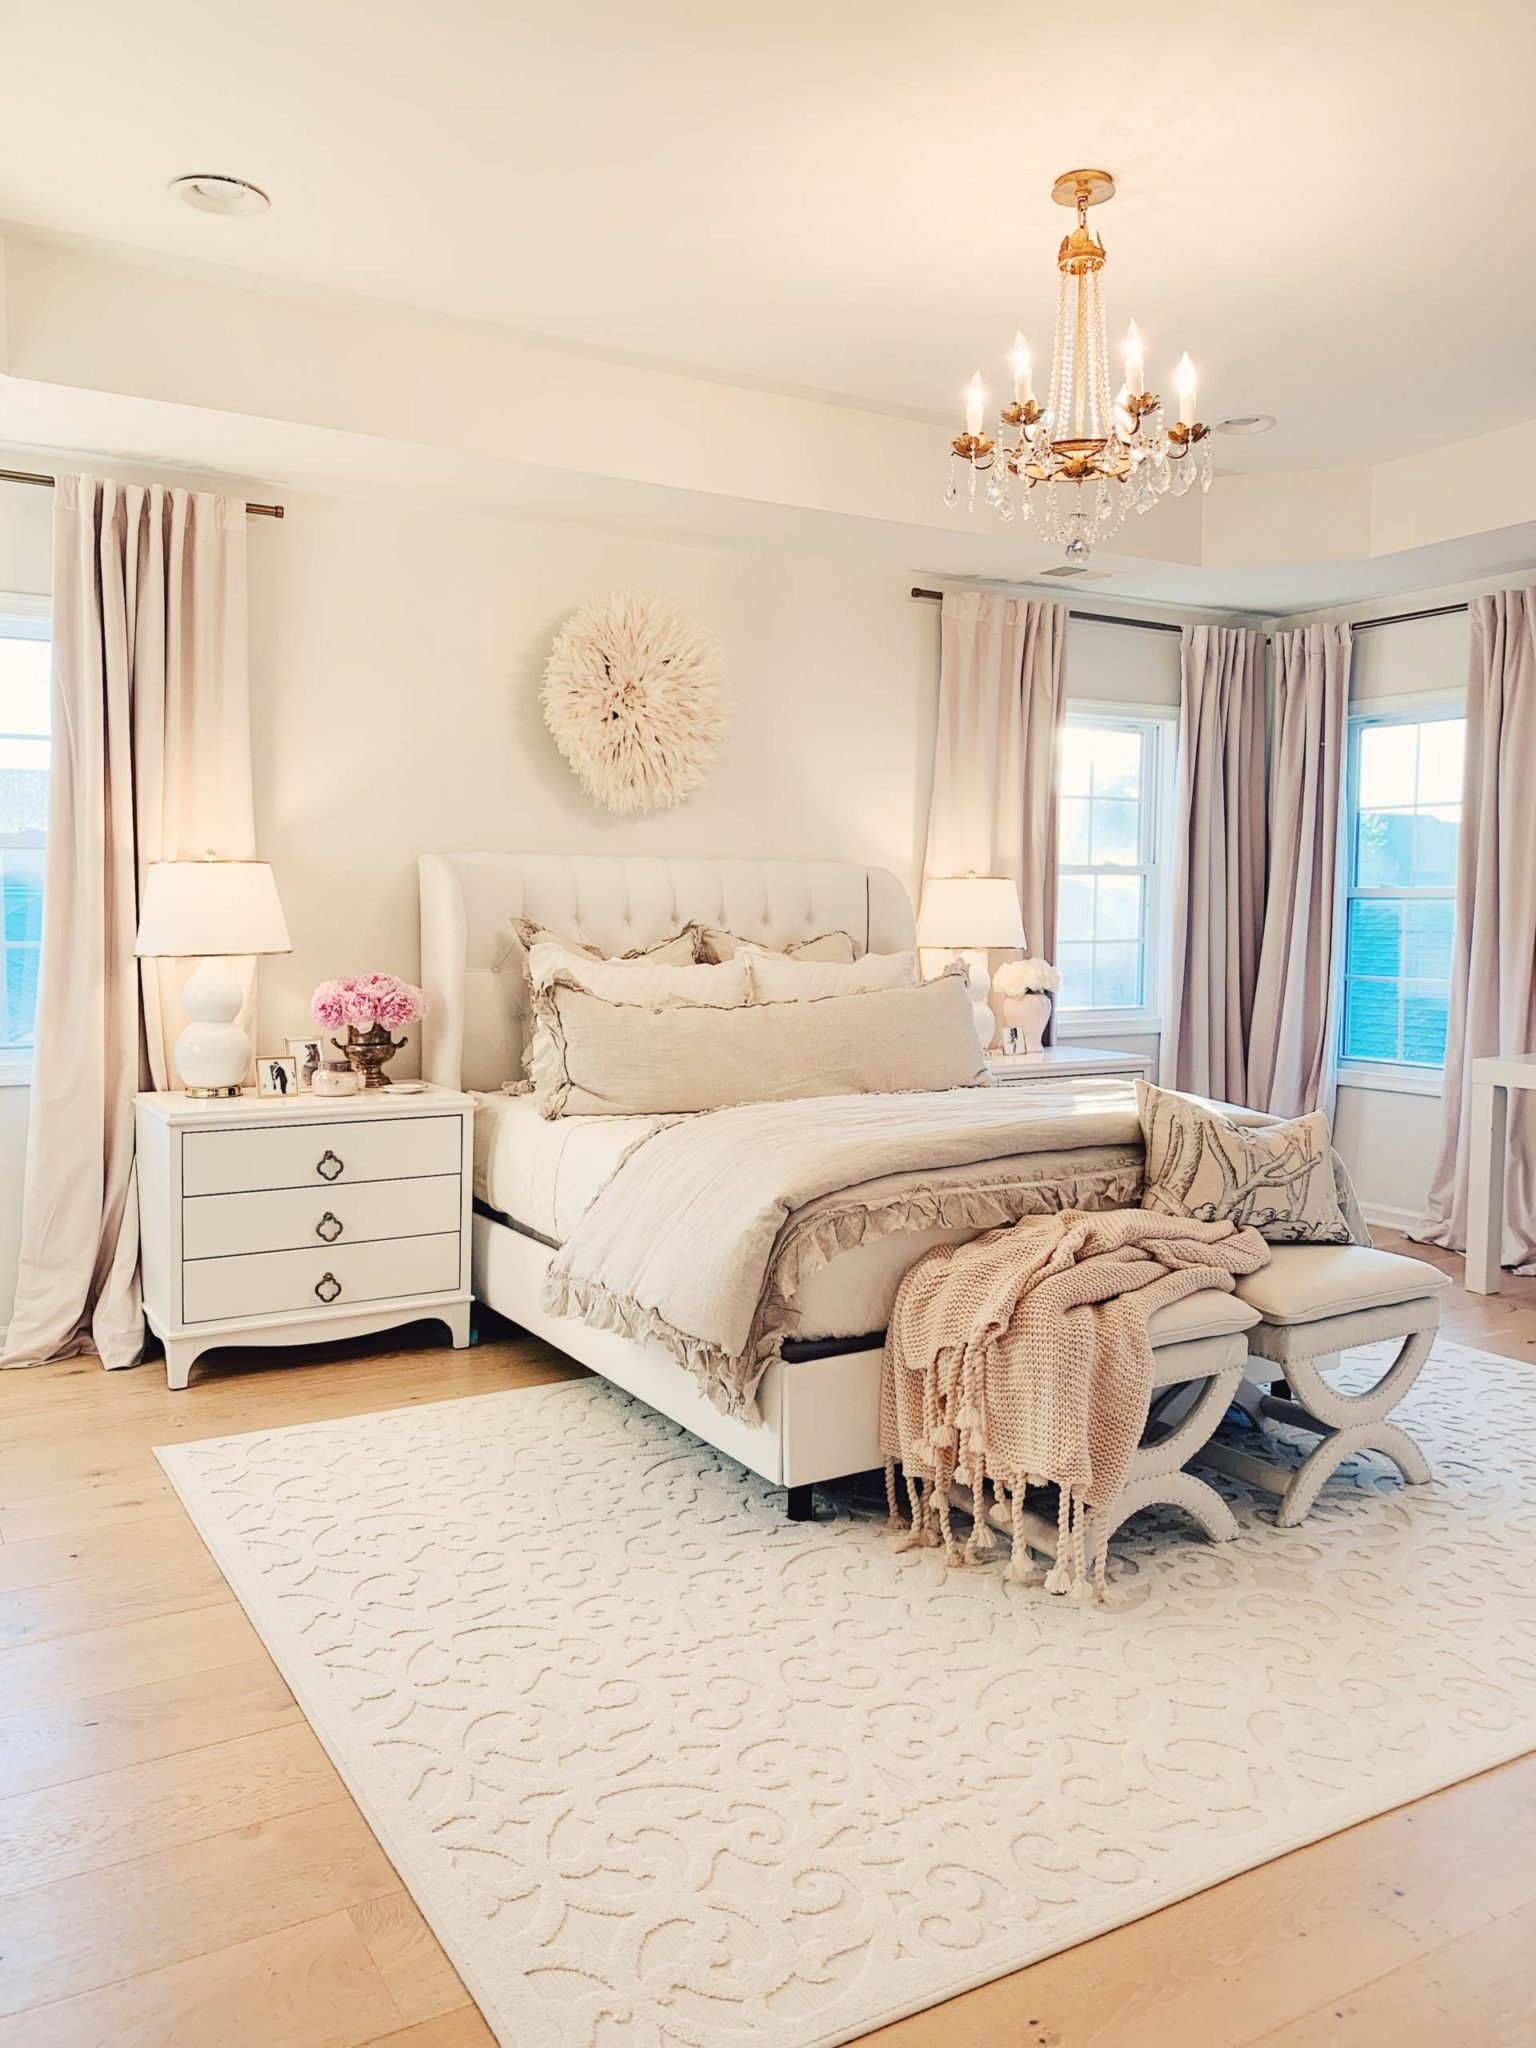 Master Bedroom Decor: a Cozy & Romantic Master Bedroom - The Pink